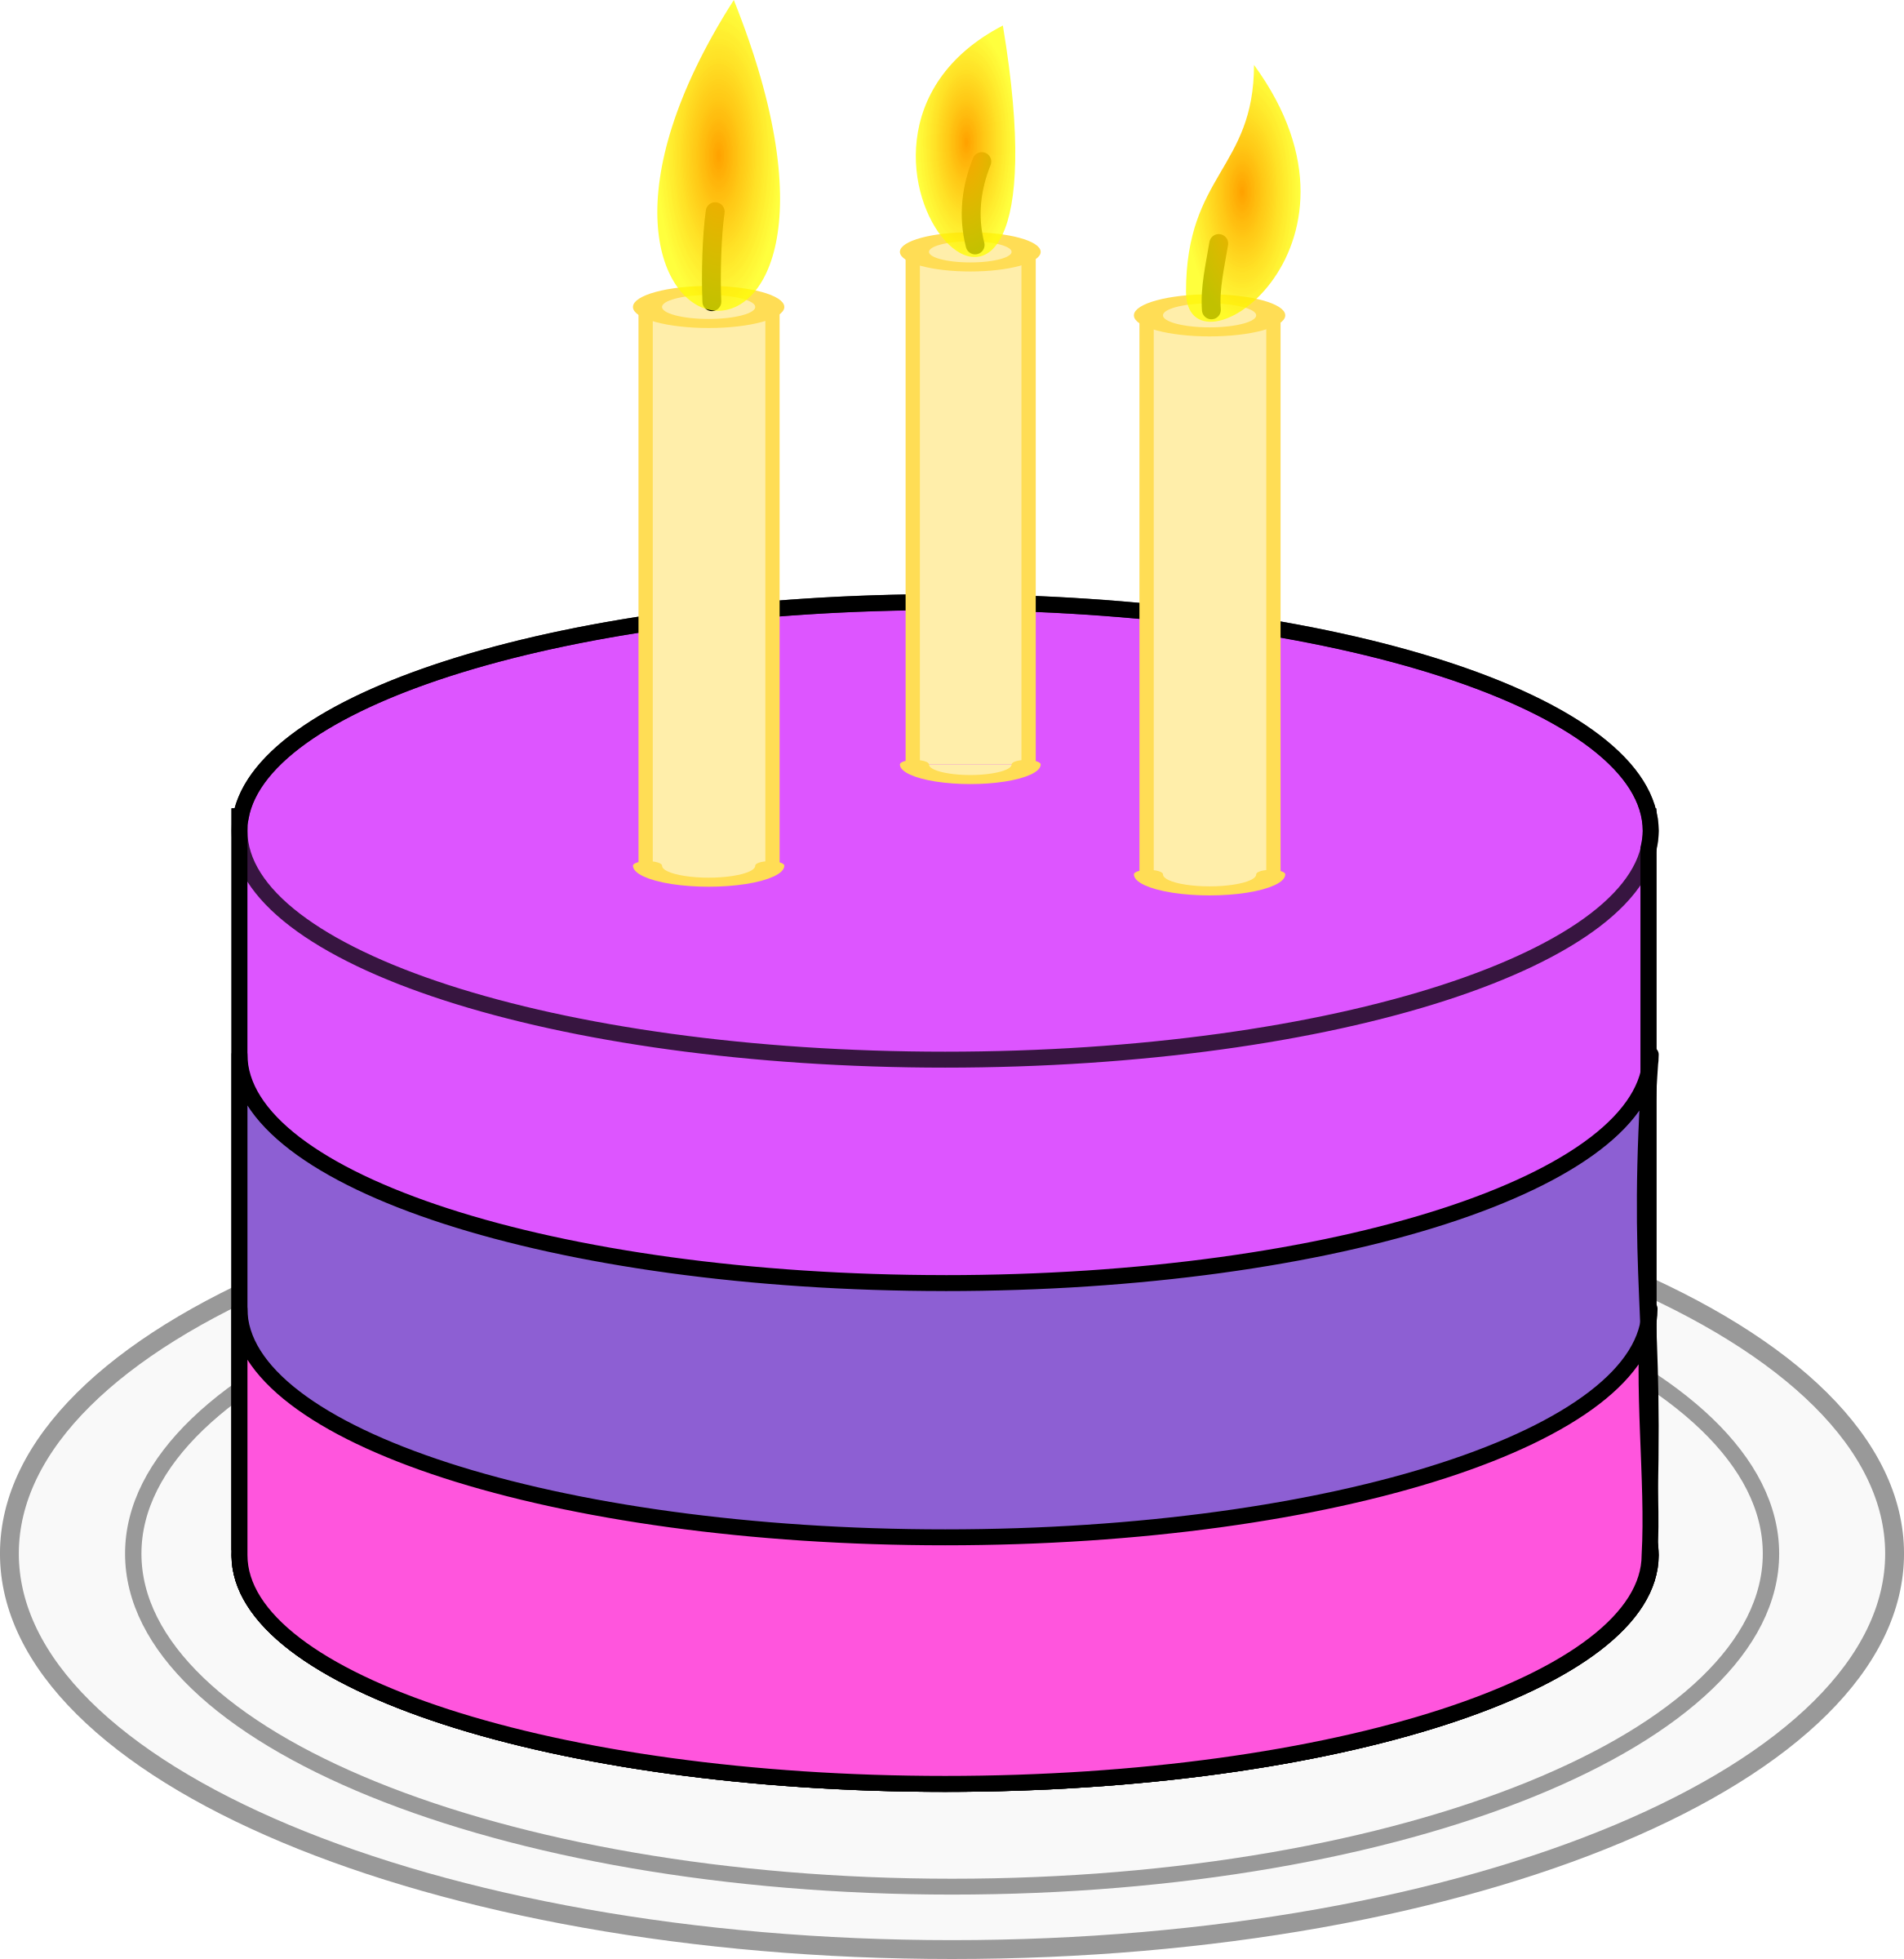 Image birthday cake clipart image royalty free stock Clipart - Birthday cake image royalty free stock